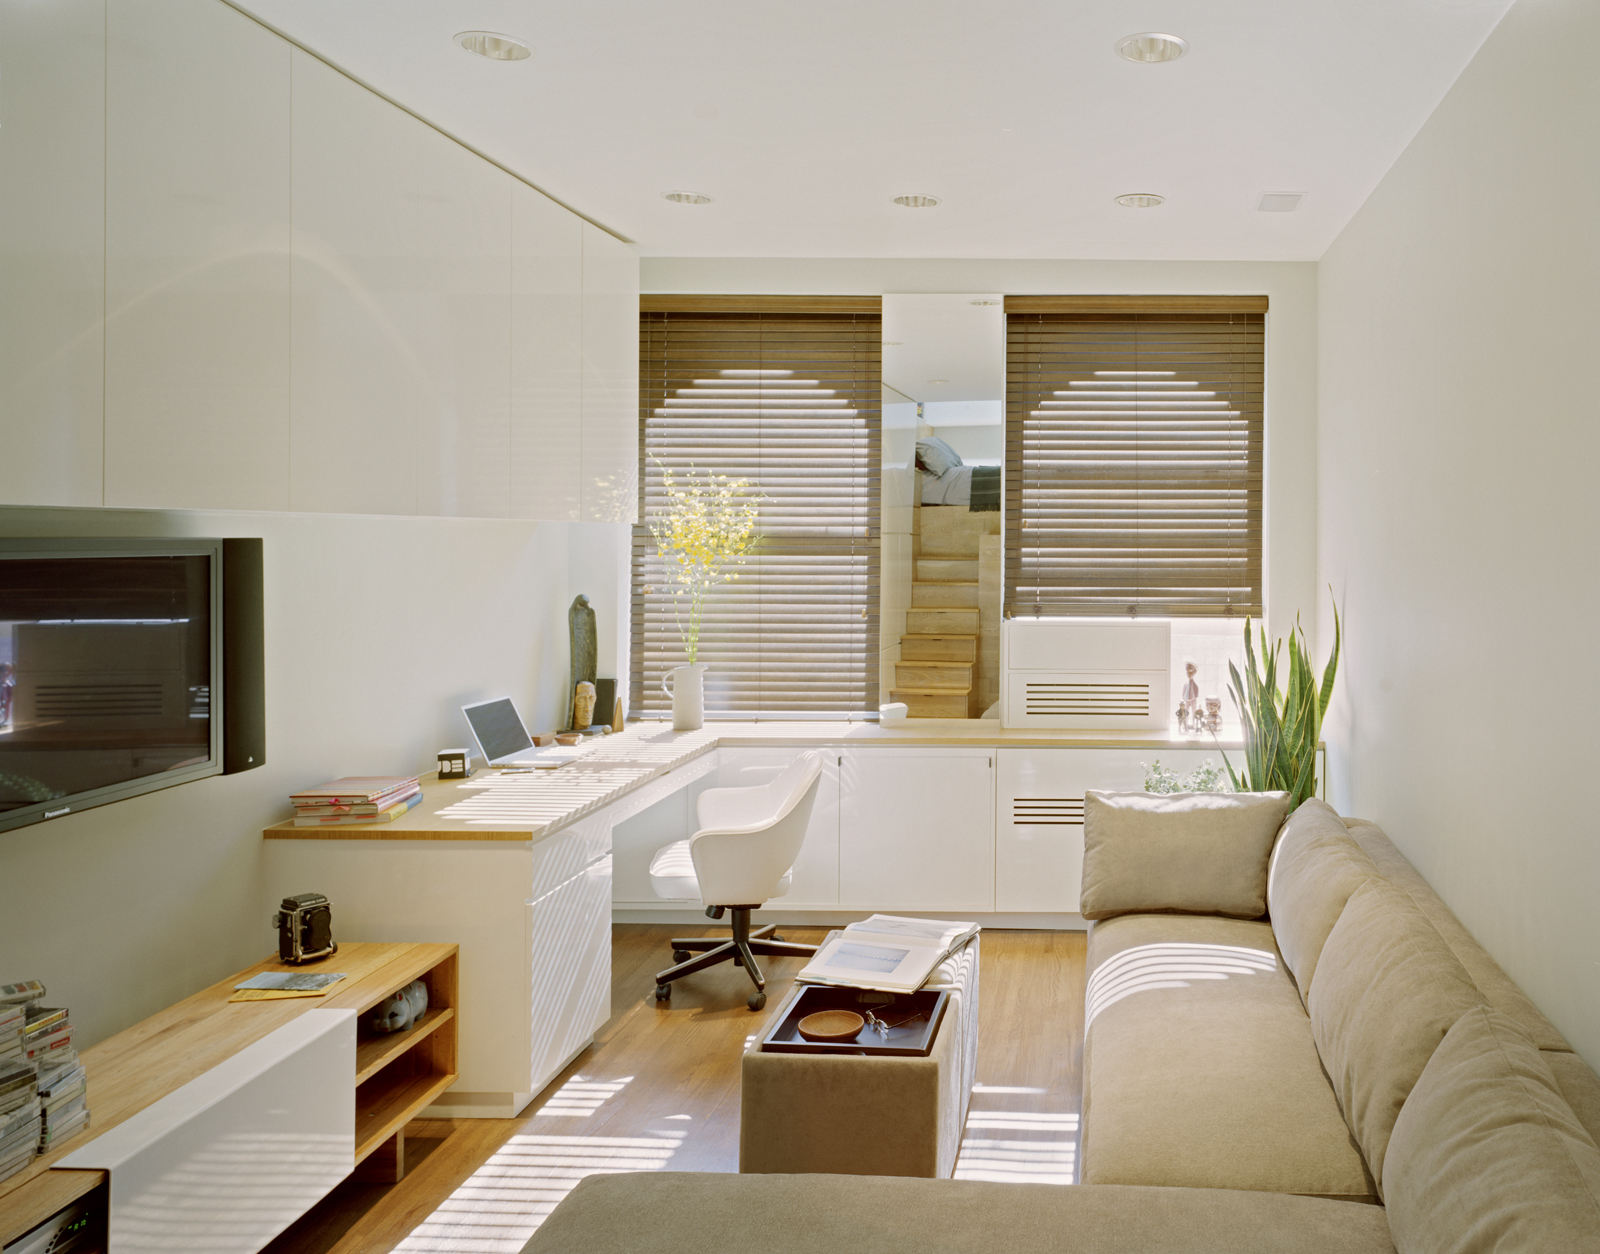 Terrific Space Saving Tiny Apartment New York Largest Home Design Picture Inspirations Pitcheantrous